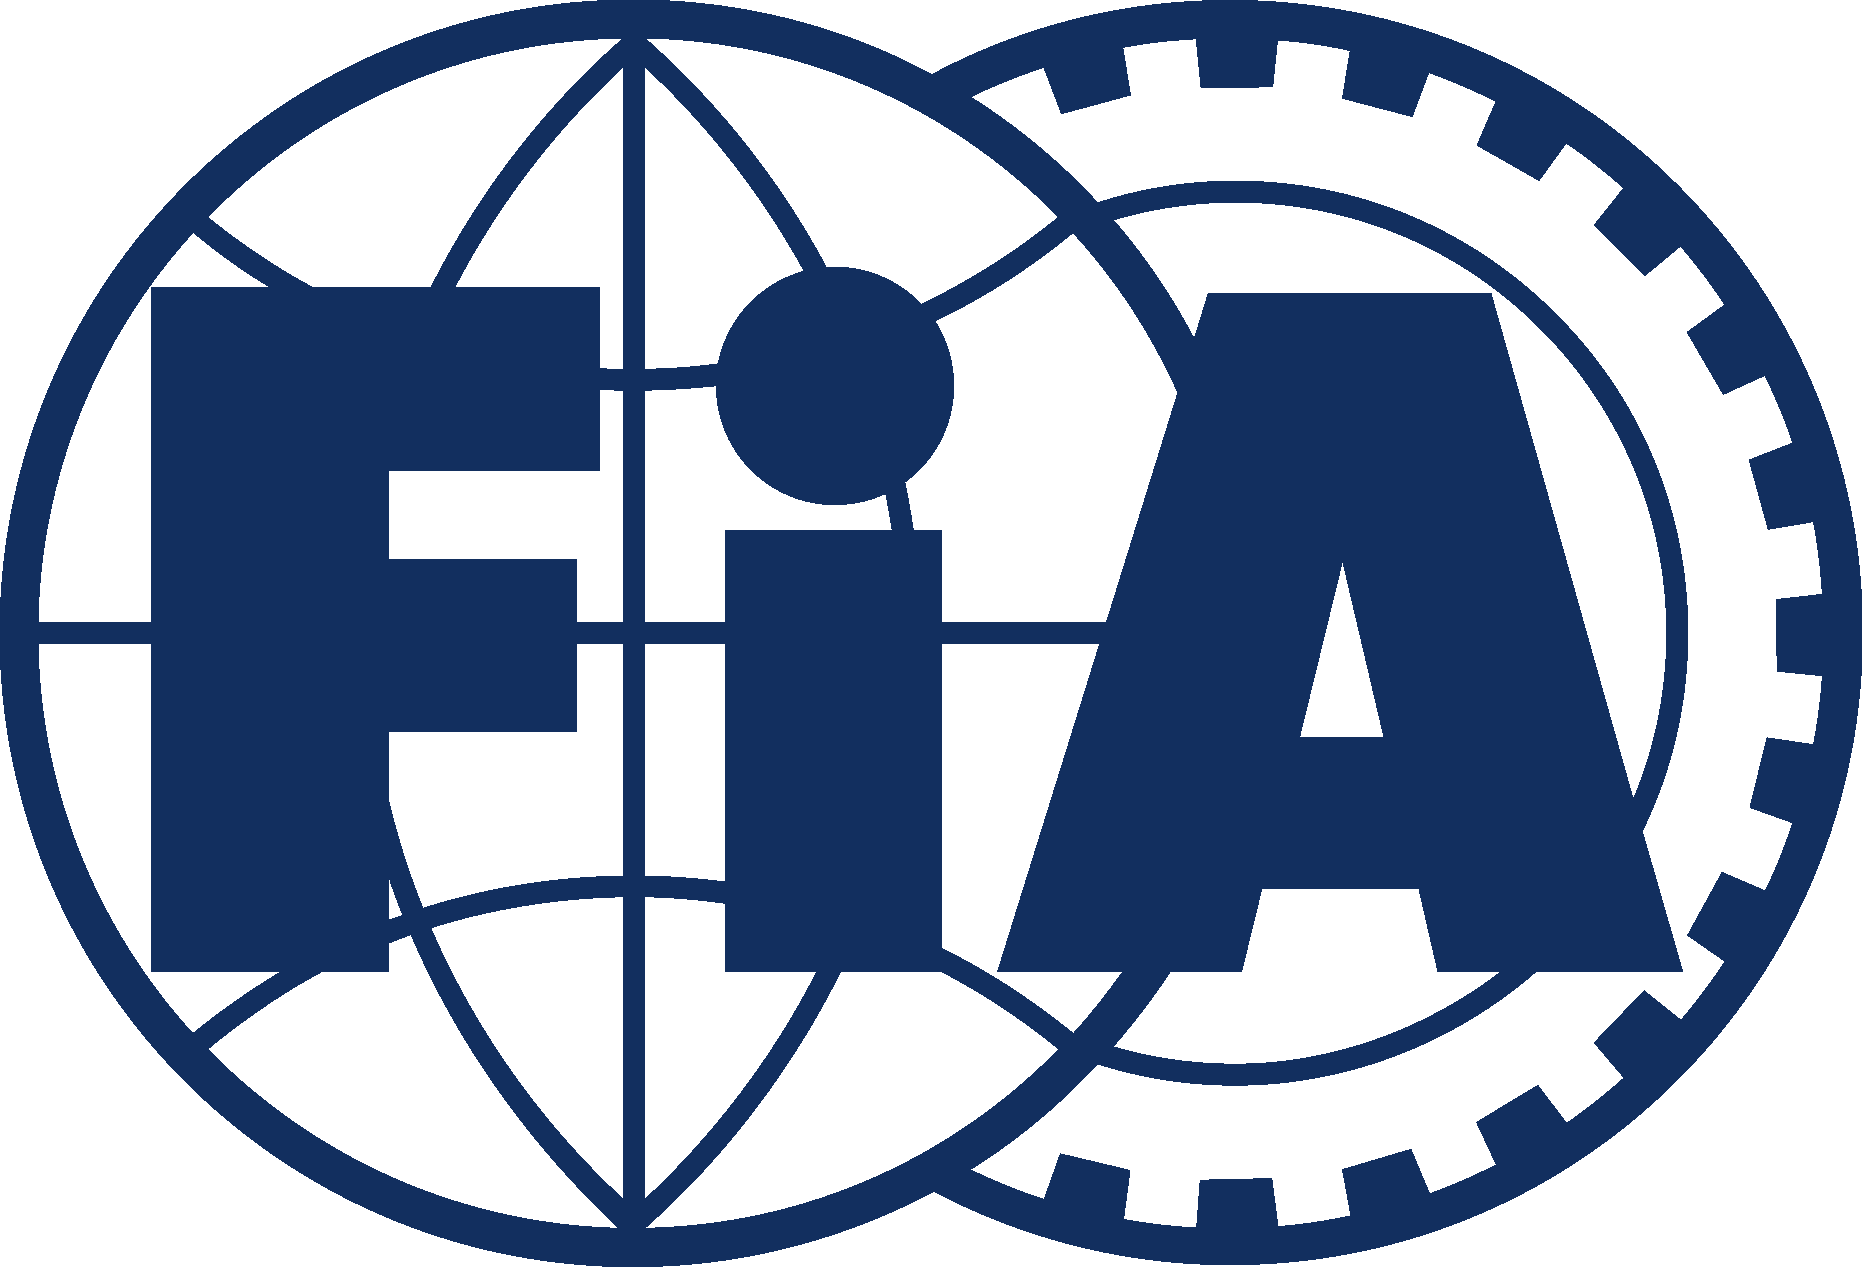 FIA   Fédération Internationale de lAutomobile Logo [fia.com] png